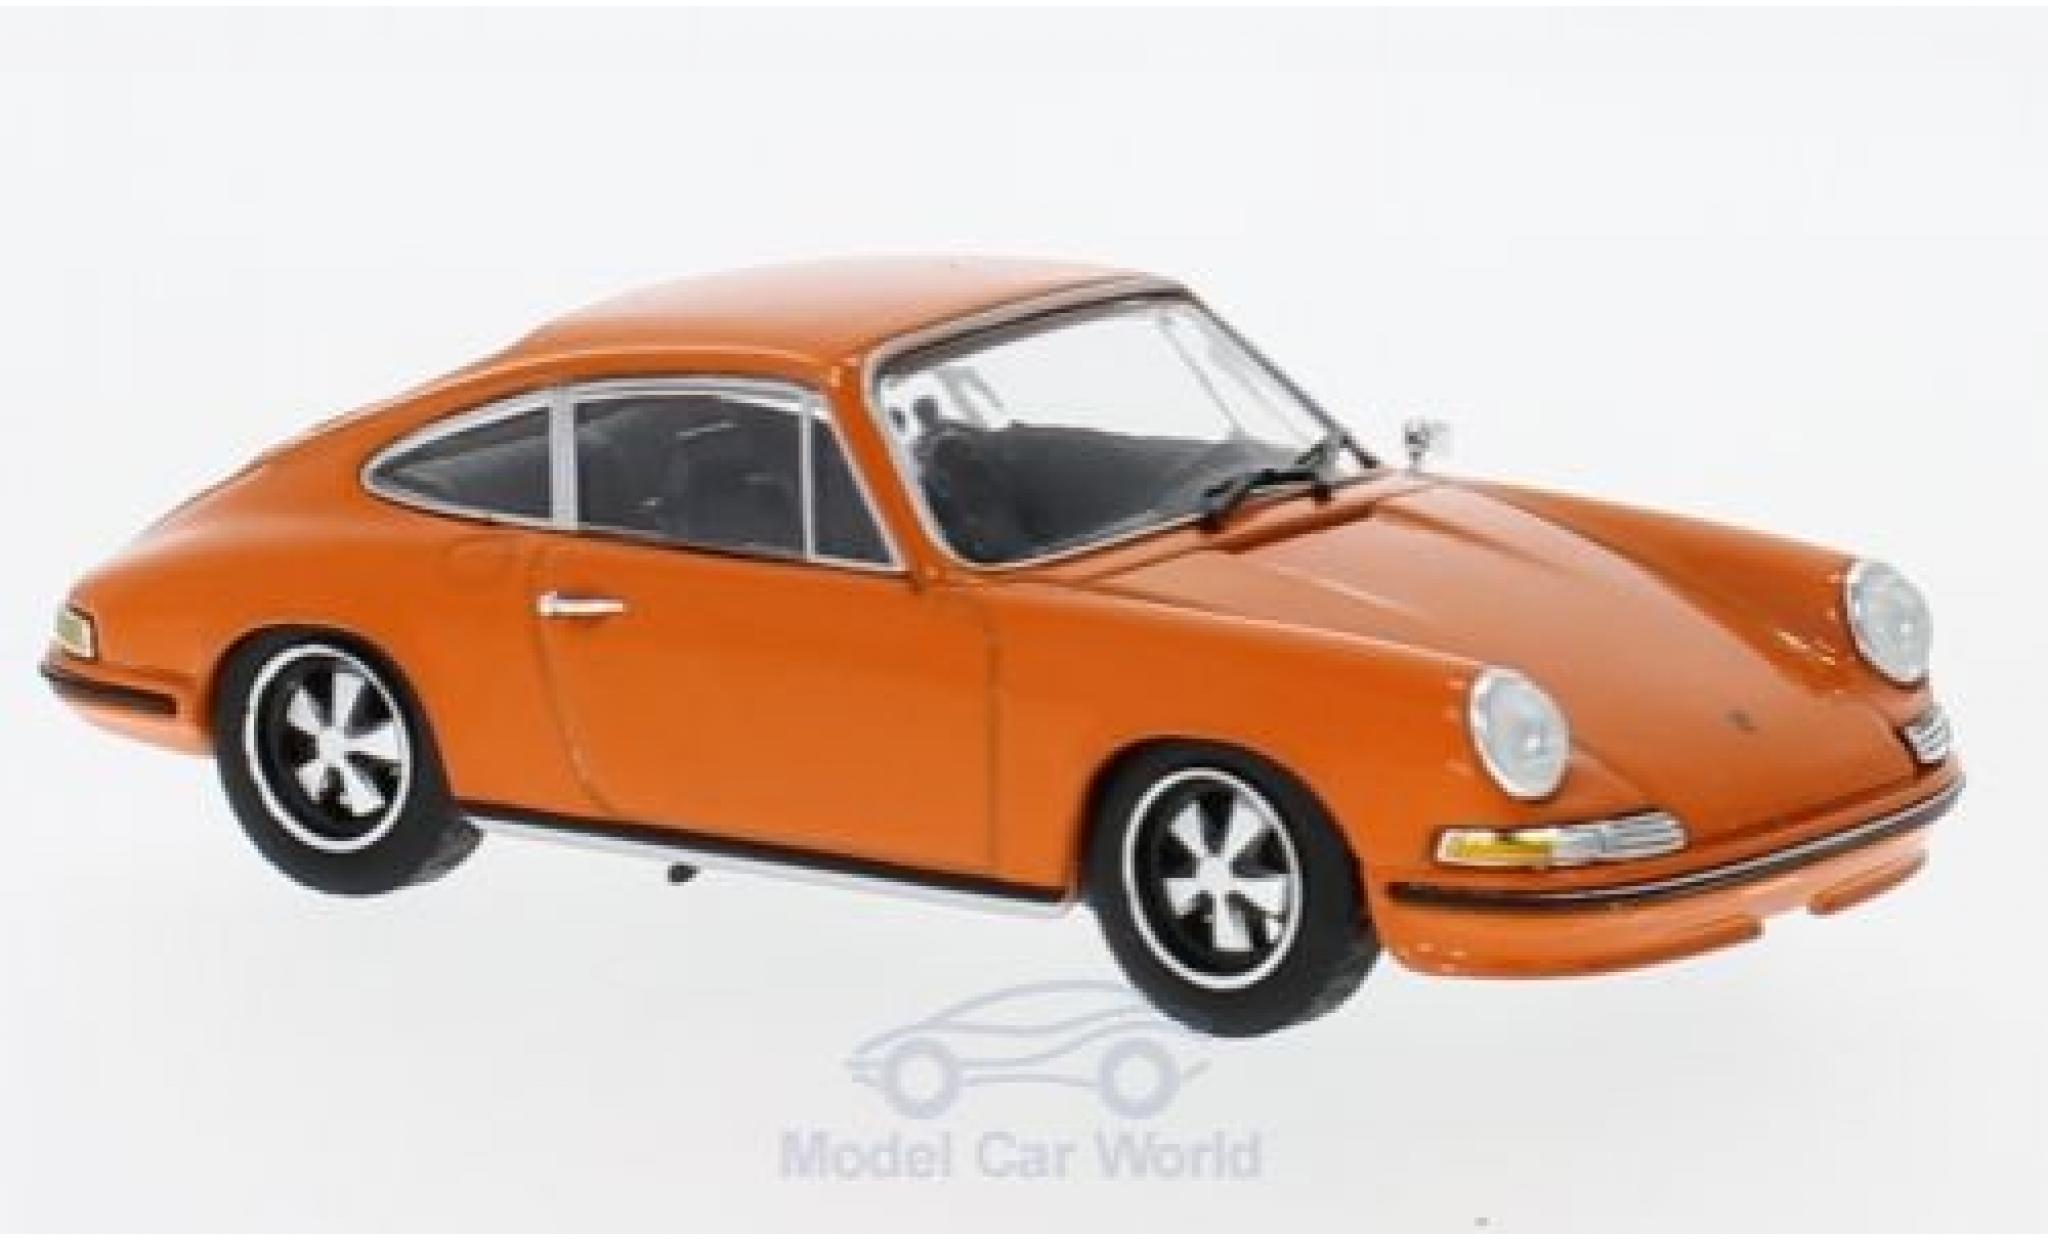 Porsche 911 SC 1/43 SpecialC 111 S 2.4 orange 1972 Collection